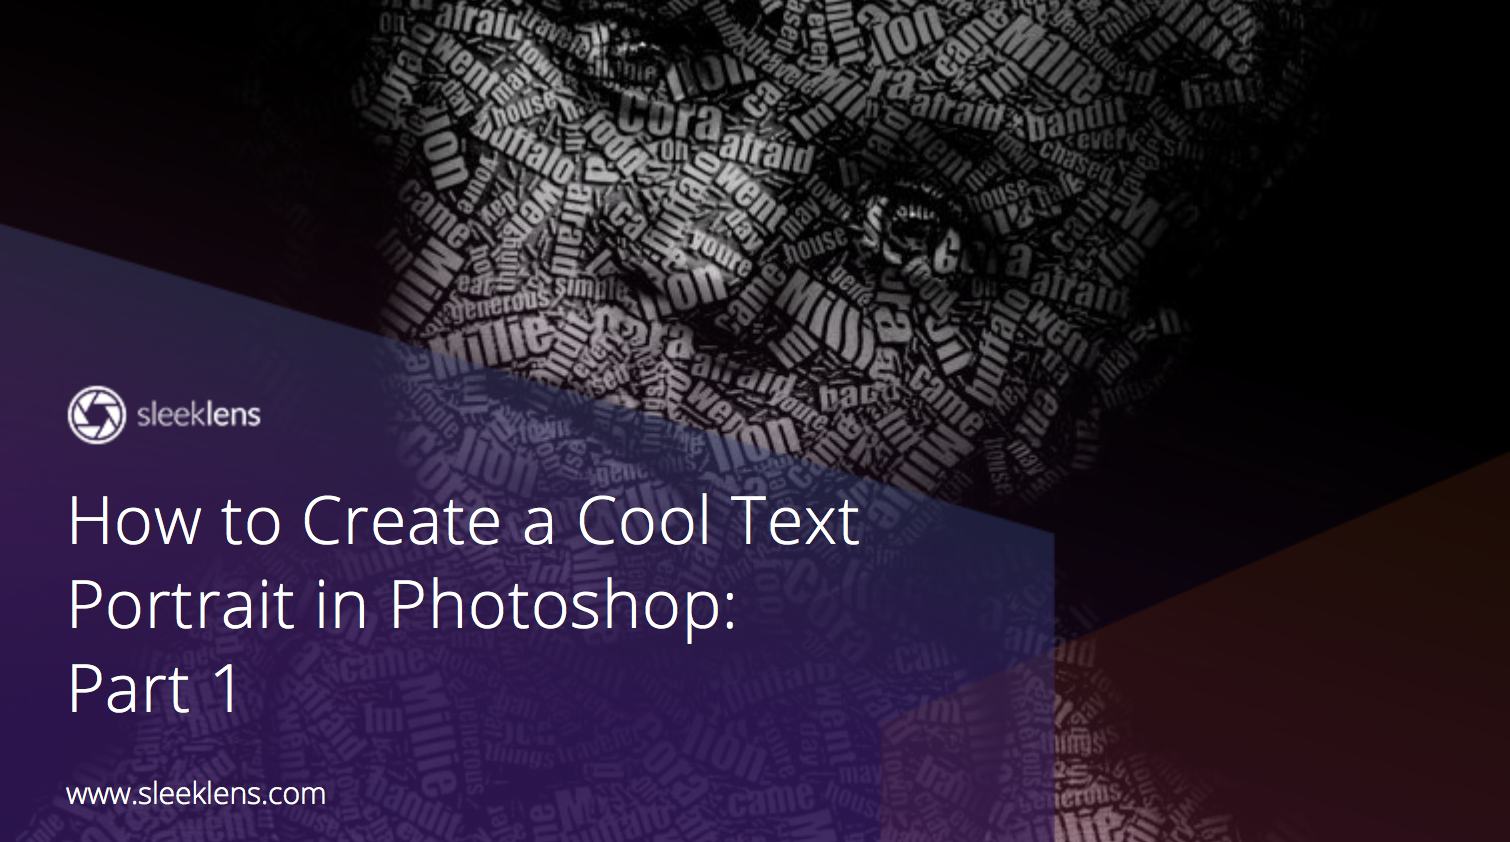 How to create a cool text portrait in adobe photoshop photoshop how to create a cool text portrait in adobe photoshop baditri Choice Image